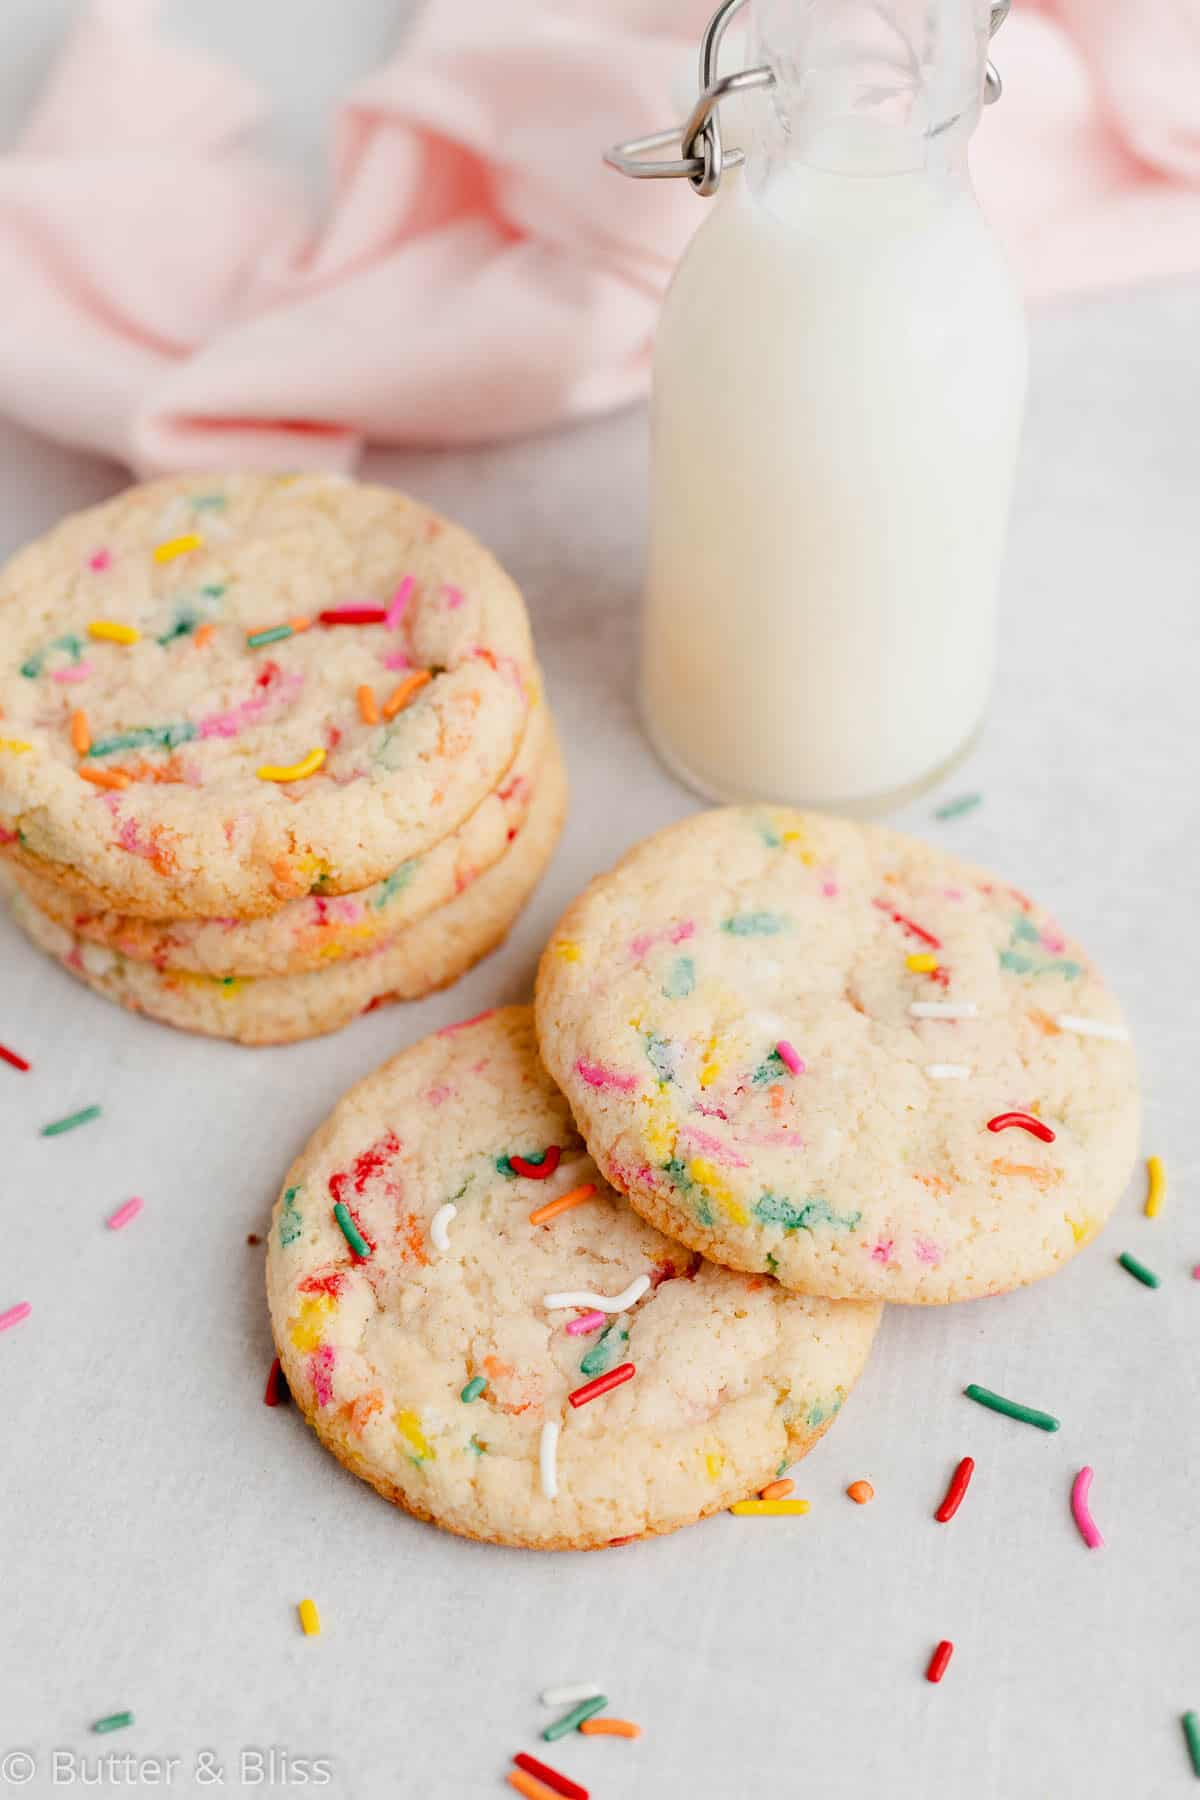 Gluten free sugar cookies with sprinkles with a glass of milk